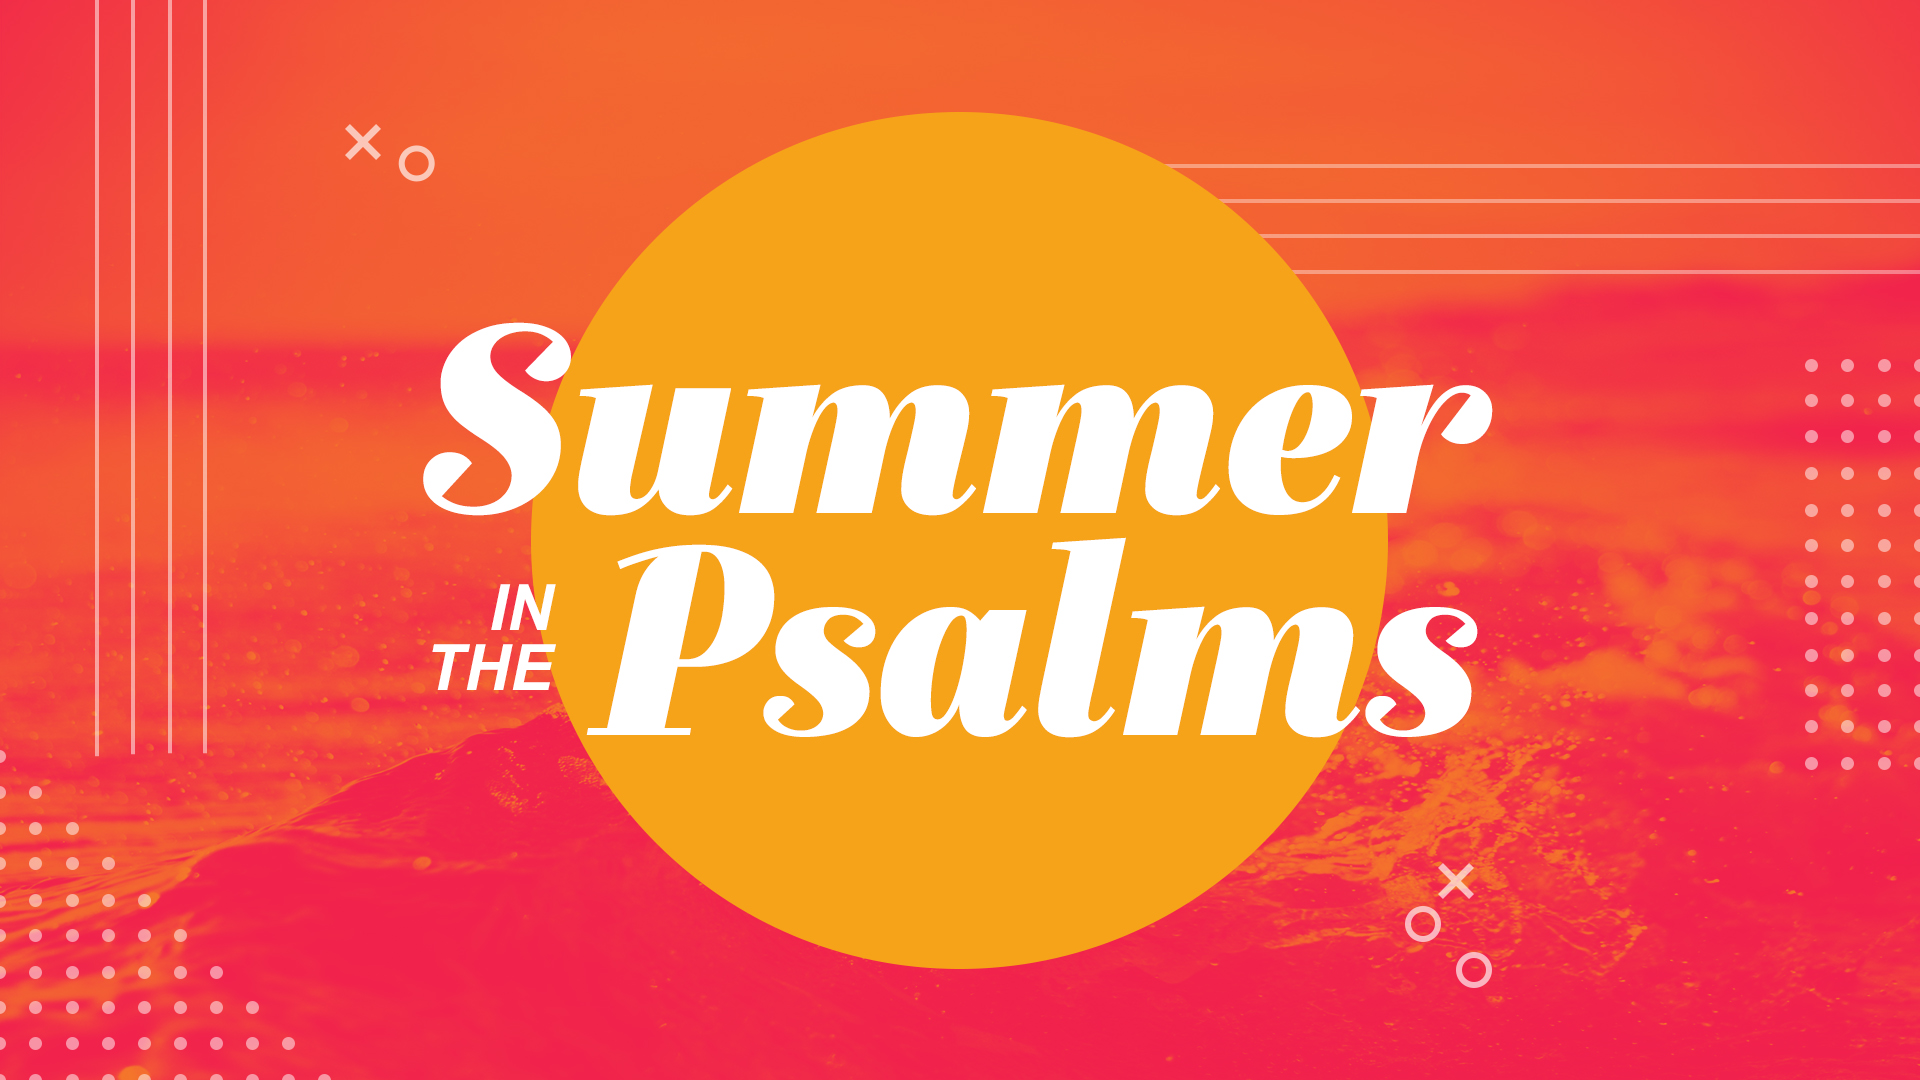 Summer in the Psalms Option copy.jpg